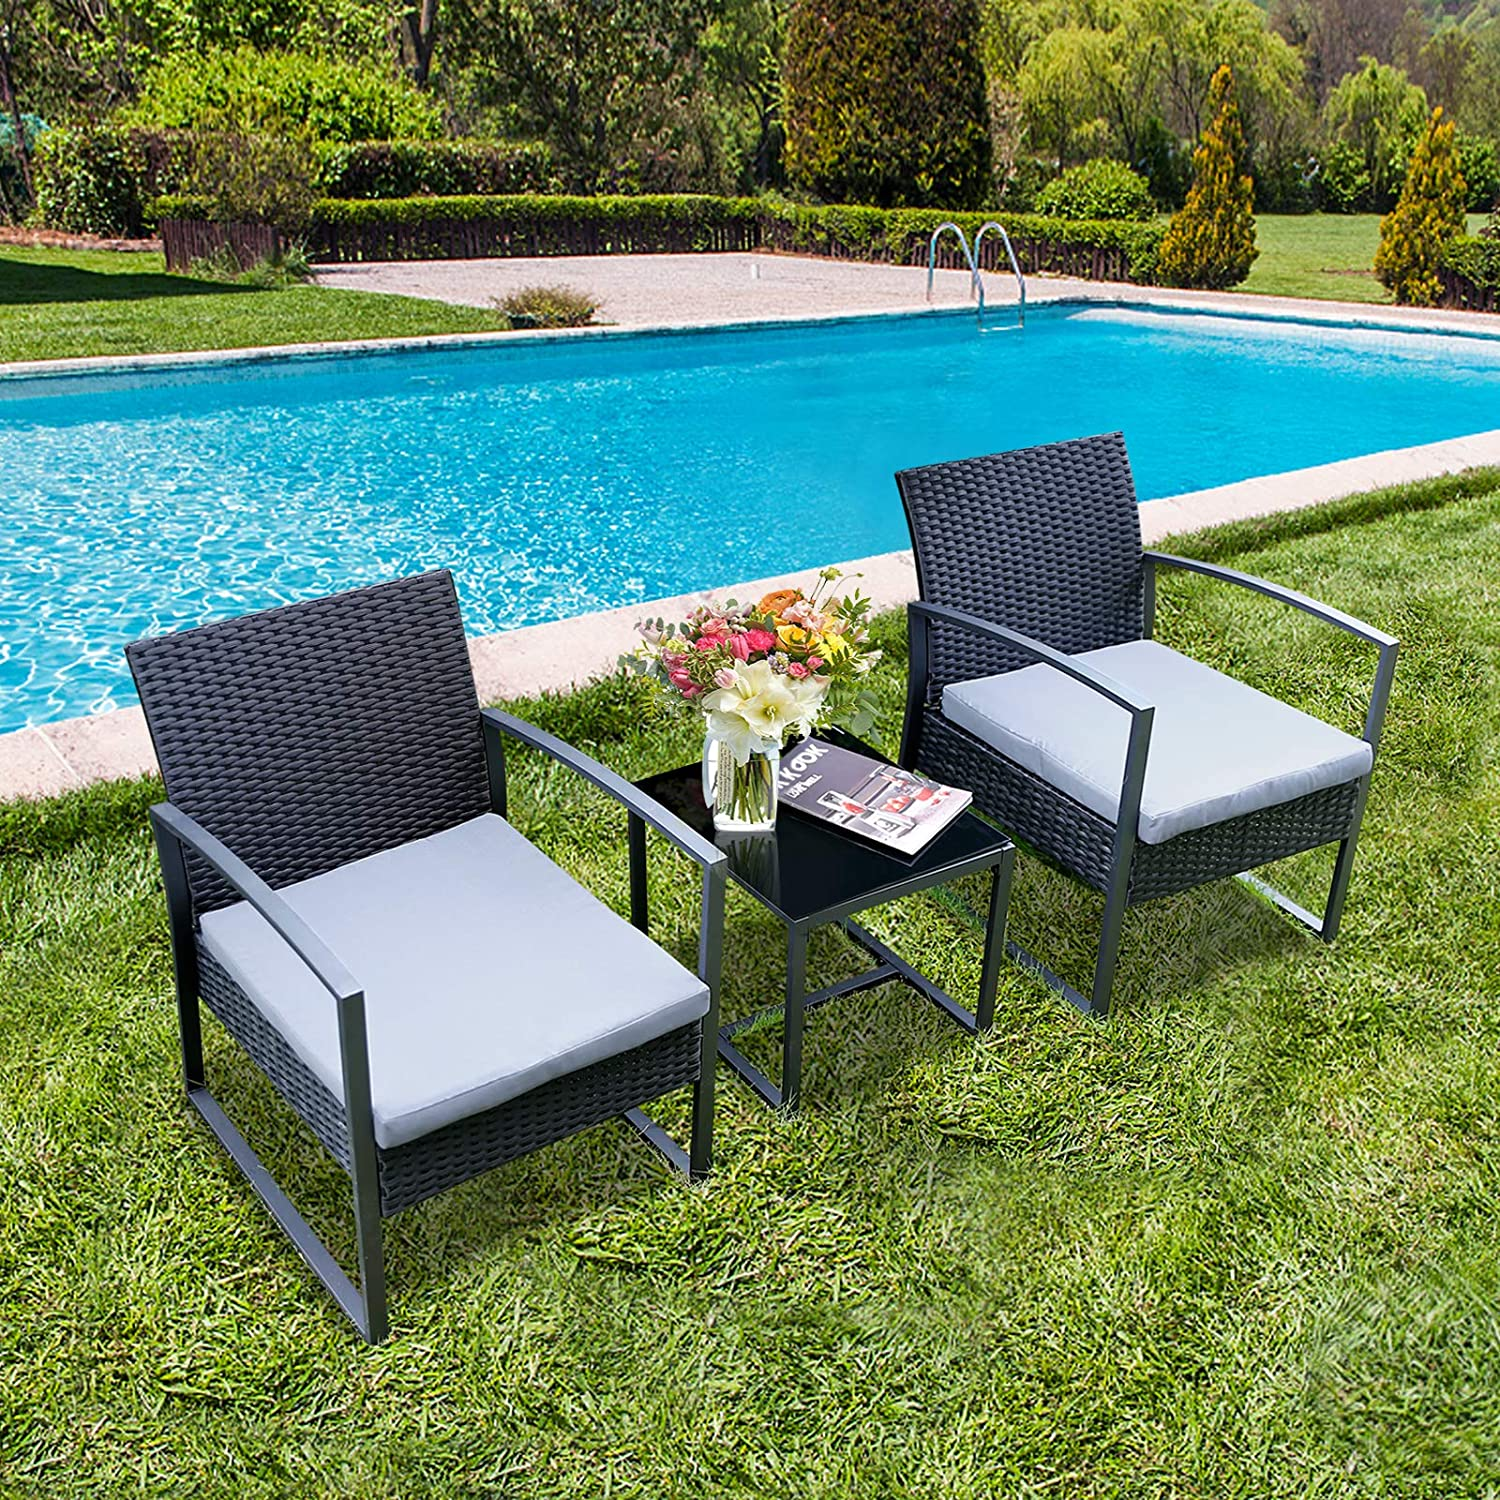 Viewee 3 Pieces Patio Rattan Sets, Modern Outdoor Furniture with 2 PE Rattan Chairs, 2 Thicker Cushions and 1 Square Metal Side Table for Indoor and Outdoor Porches, Decks and Balconies